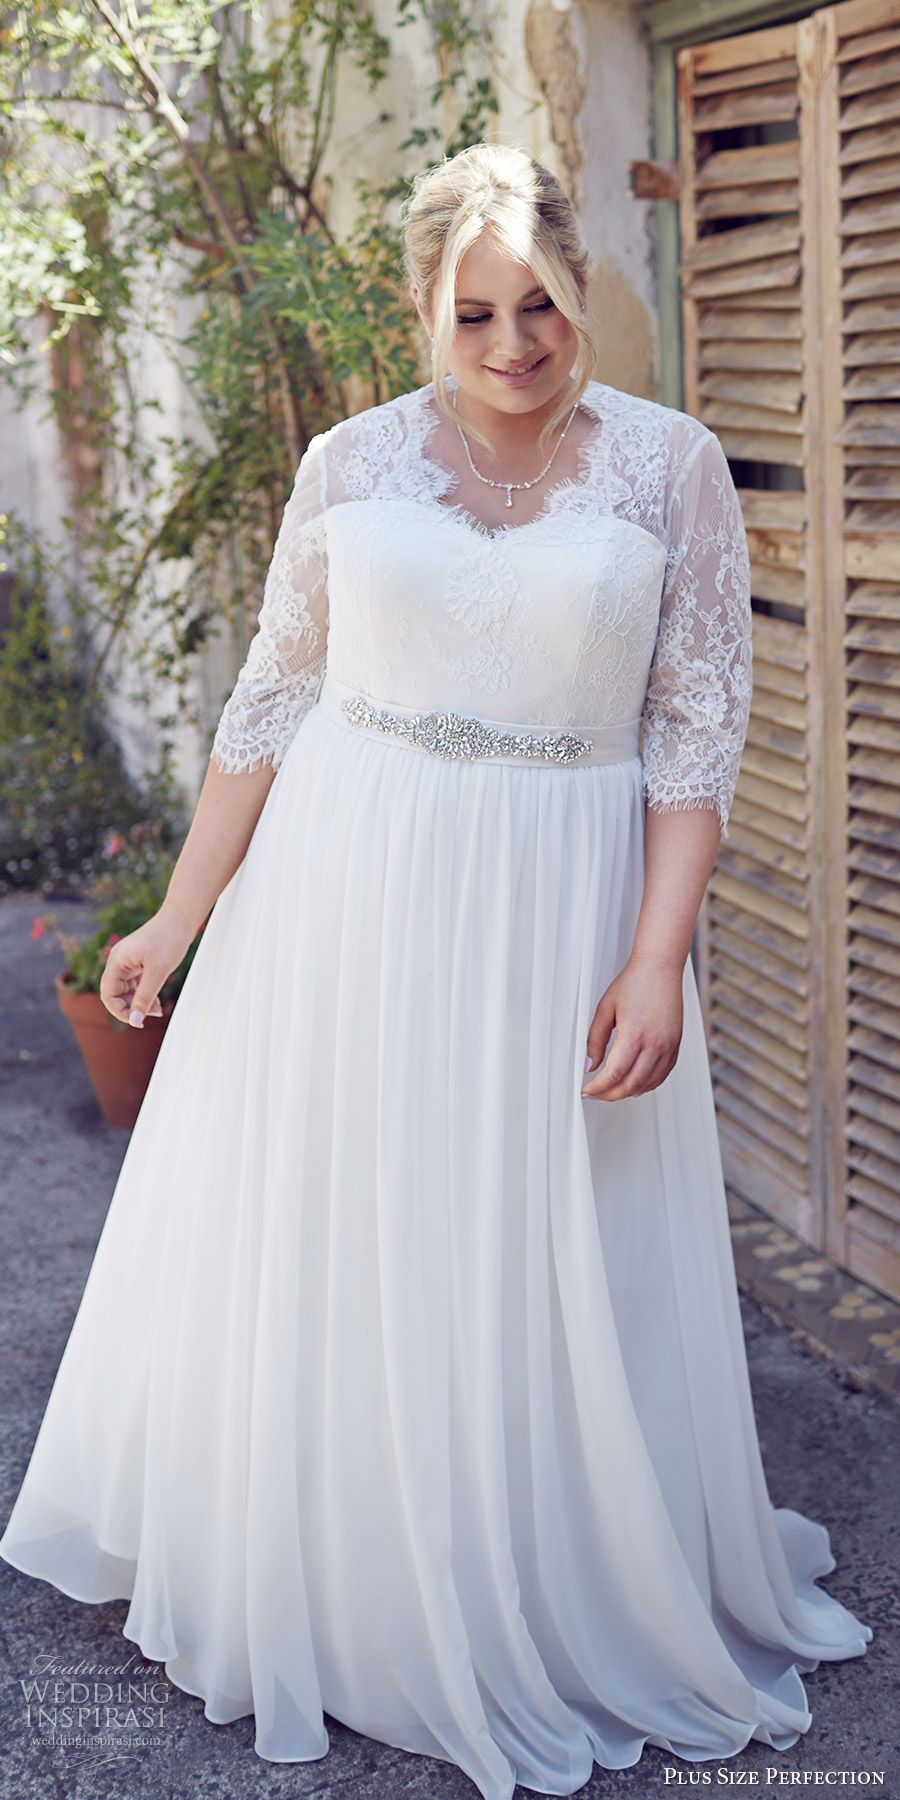 plus size perfection bridal 2016 3 quarter sleeves sweetheart illusion v  neck lace bodice a line wedding dress (elegance) mv romantic elegant 36c606eb7691